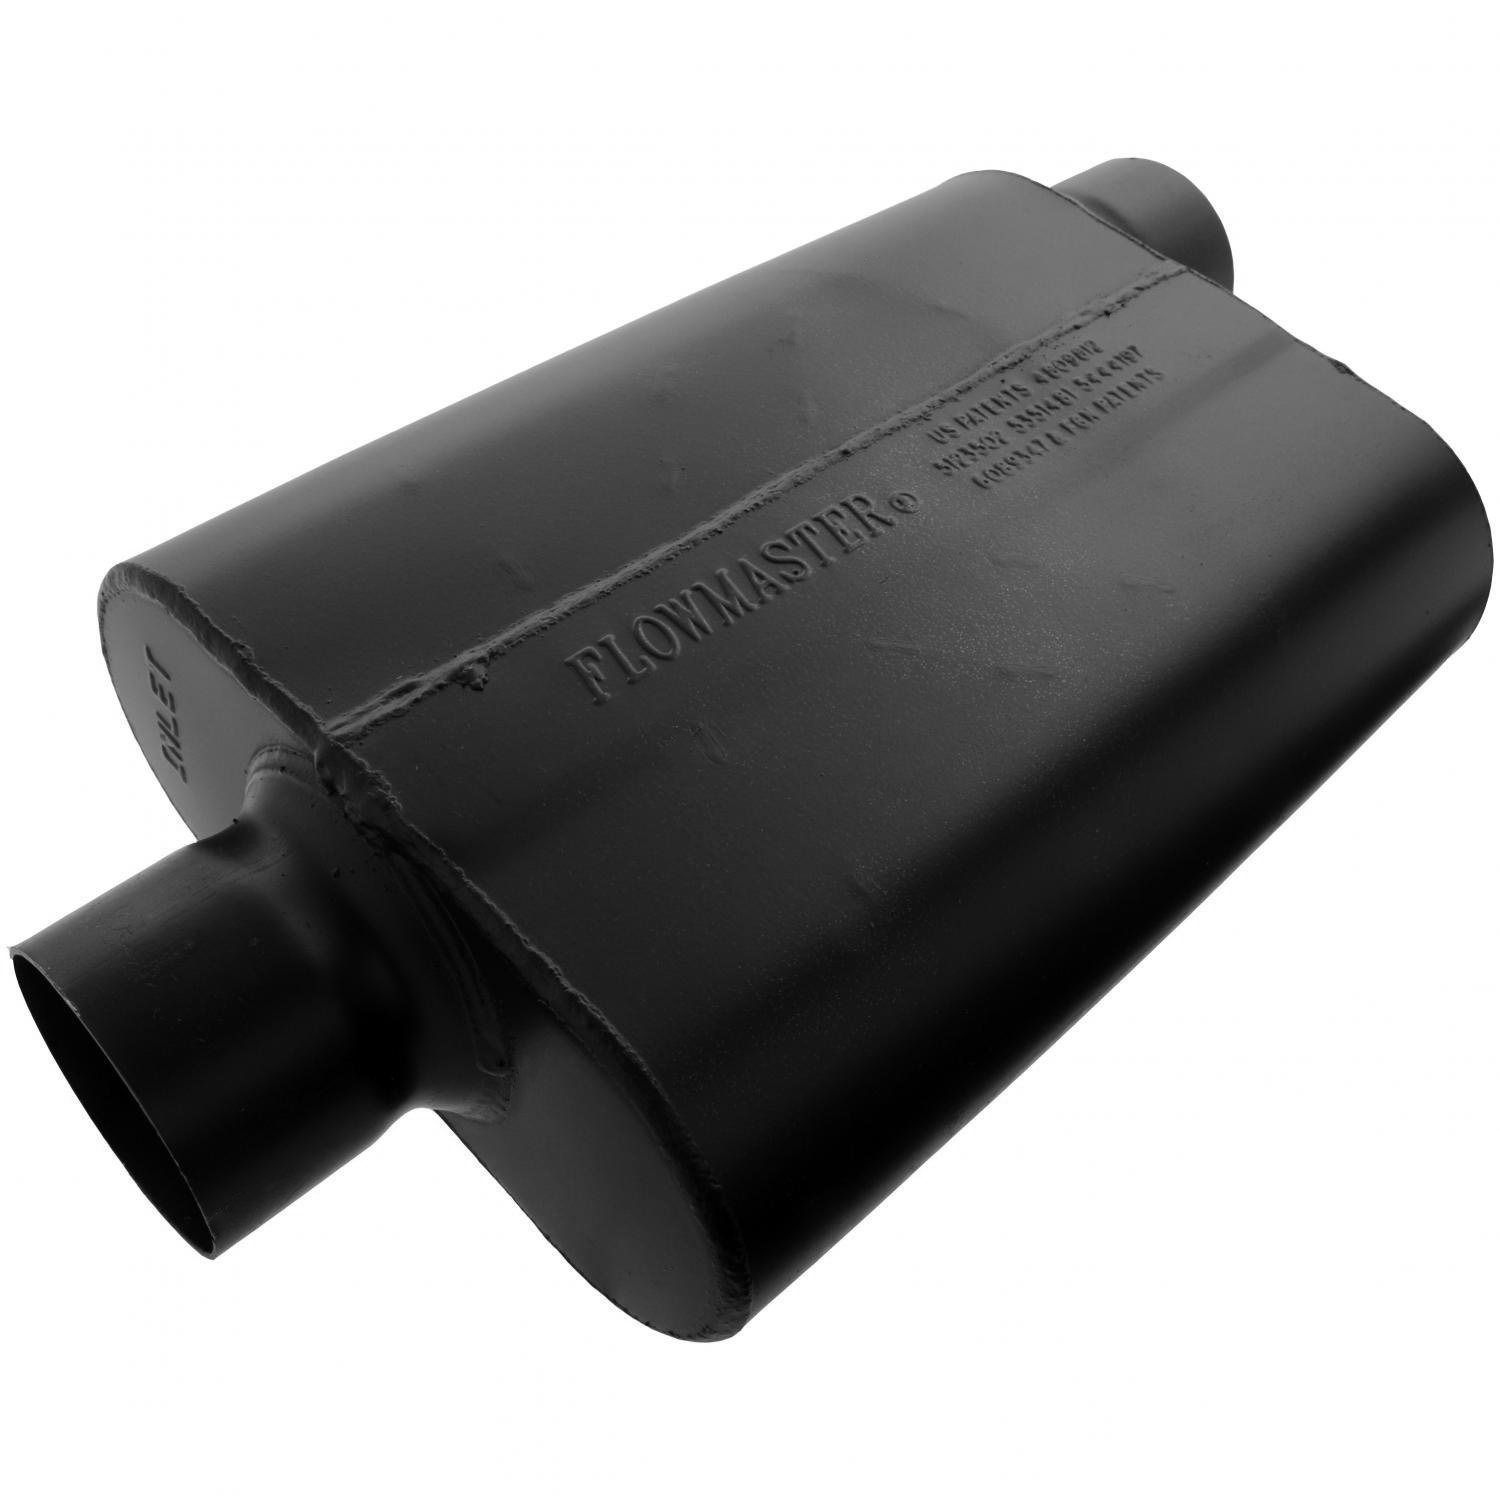 Flowmaster 943047 Super 44 Muffler - 3.00 Center IN / 3.00 Offset OUT - Aggressive Sound by Flowmaster (Image #1)